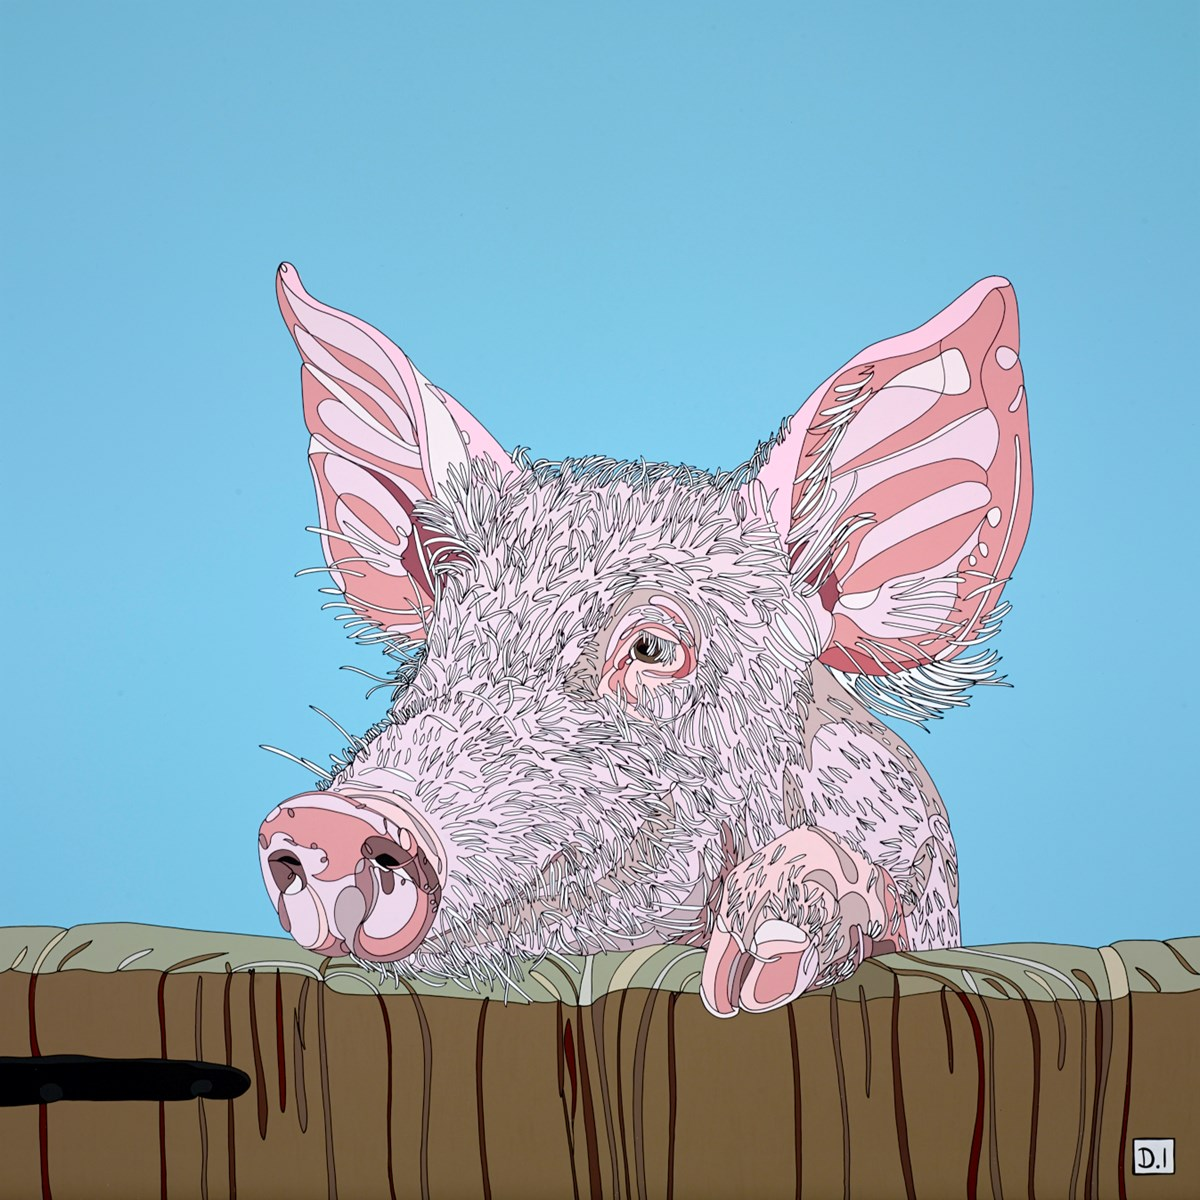 Pig by dylan izaak -  sized 32x32 inches. Available from Whitewall Galleries